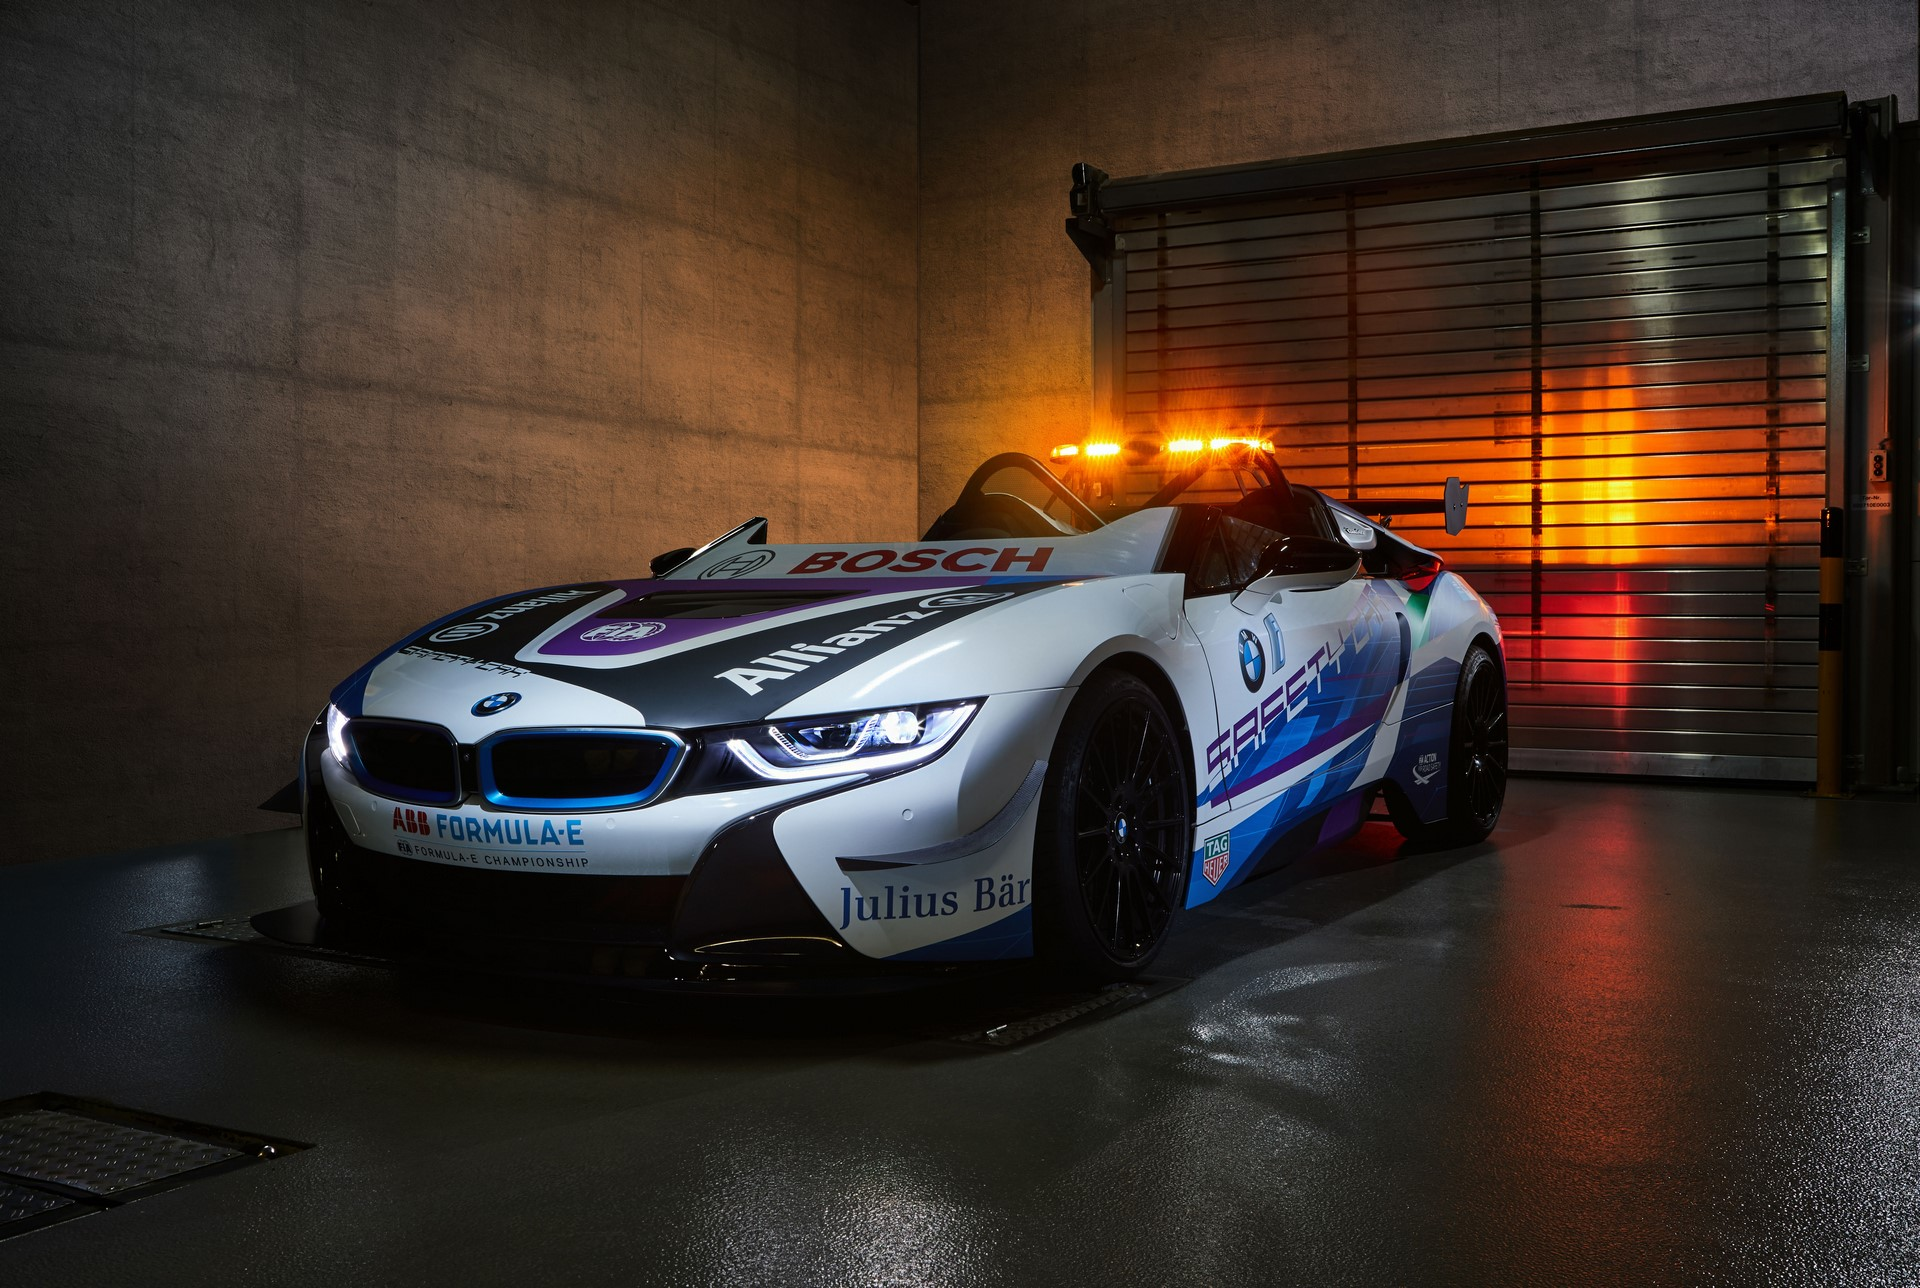 BMW-i8-Speedster-Formula-E-Safety-Car-1